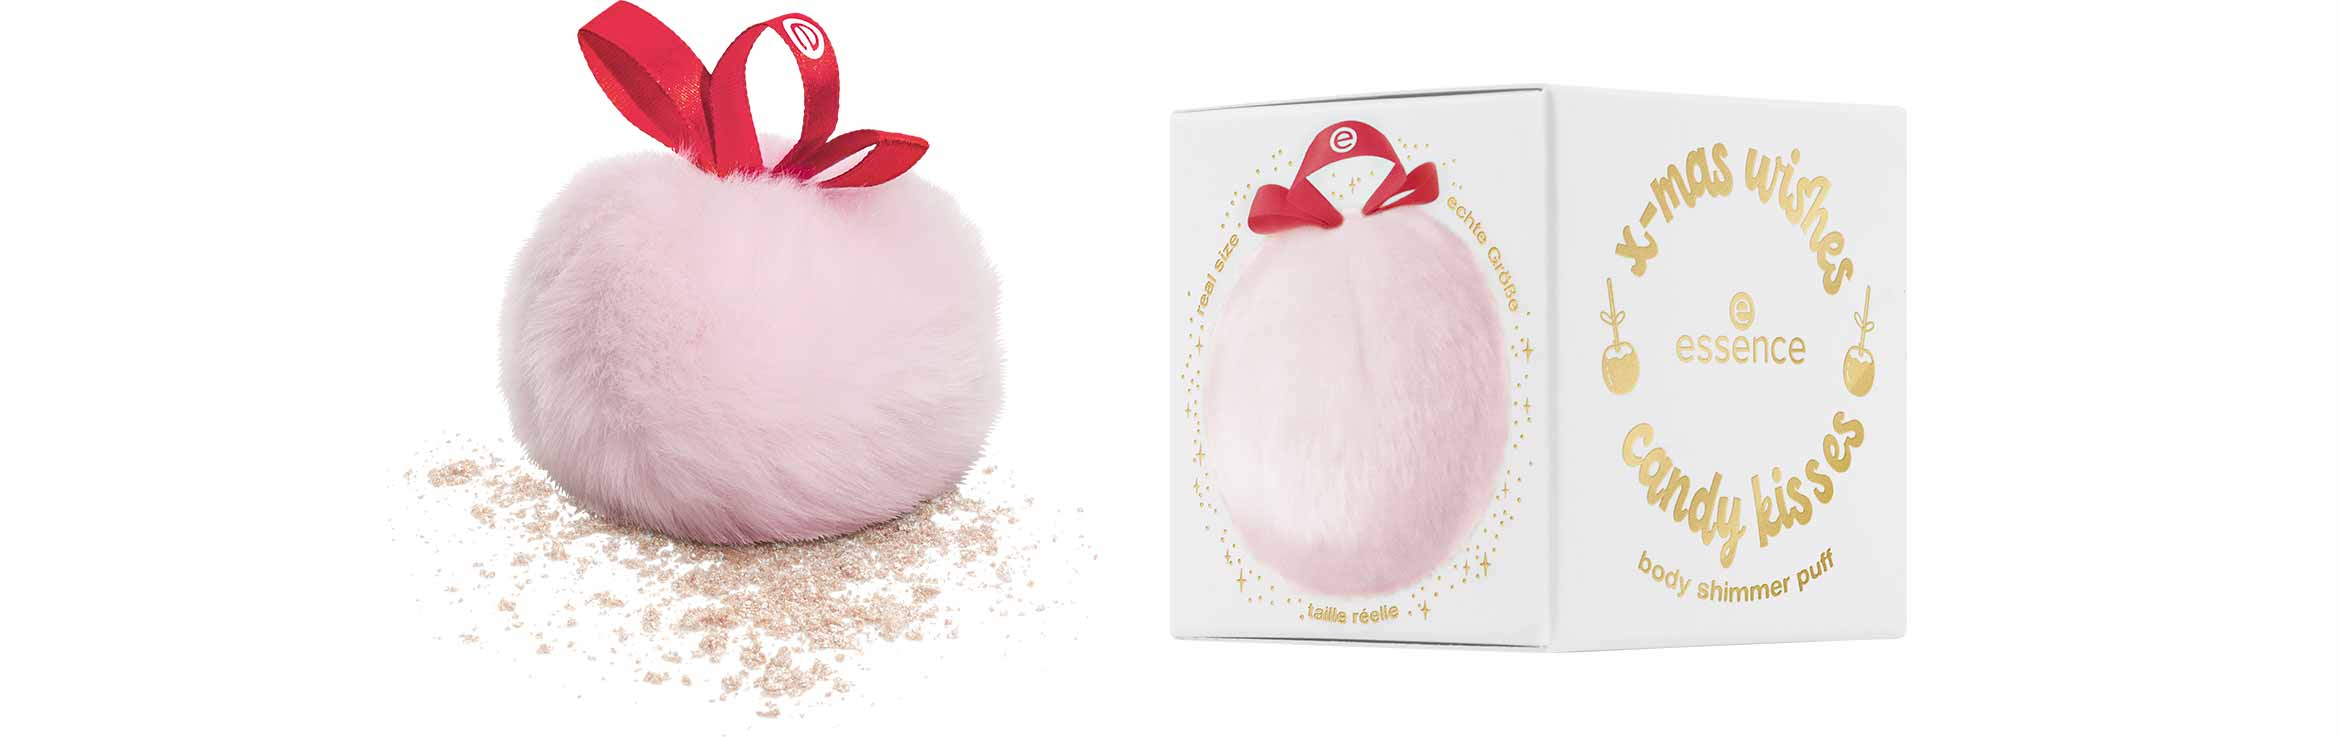 essence x-mas wishes candy kisses body shimmer puff